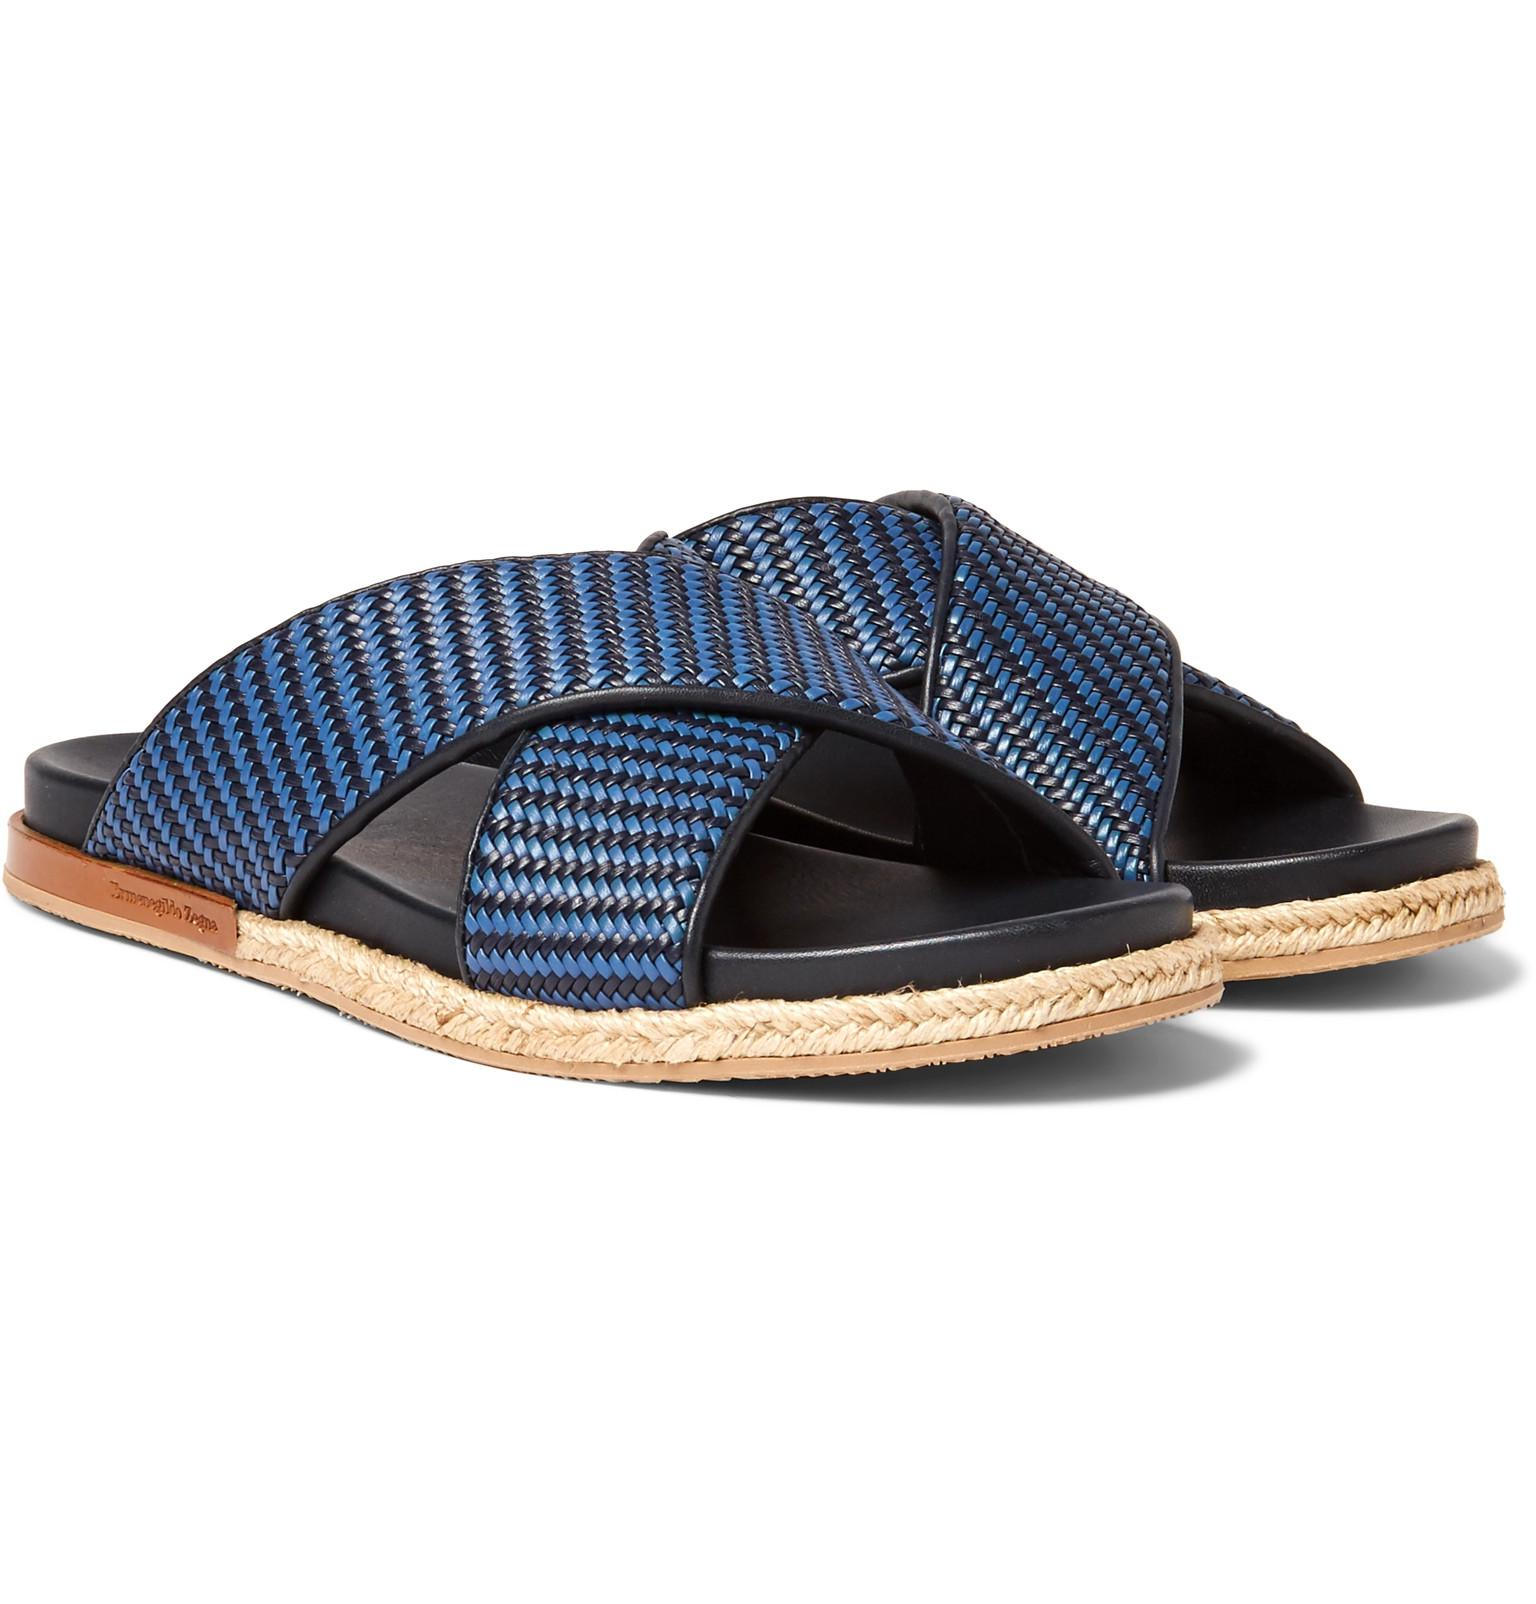 Leather Slides Ermenegildo Zegna